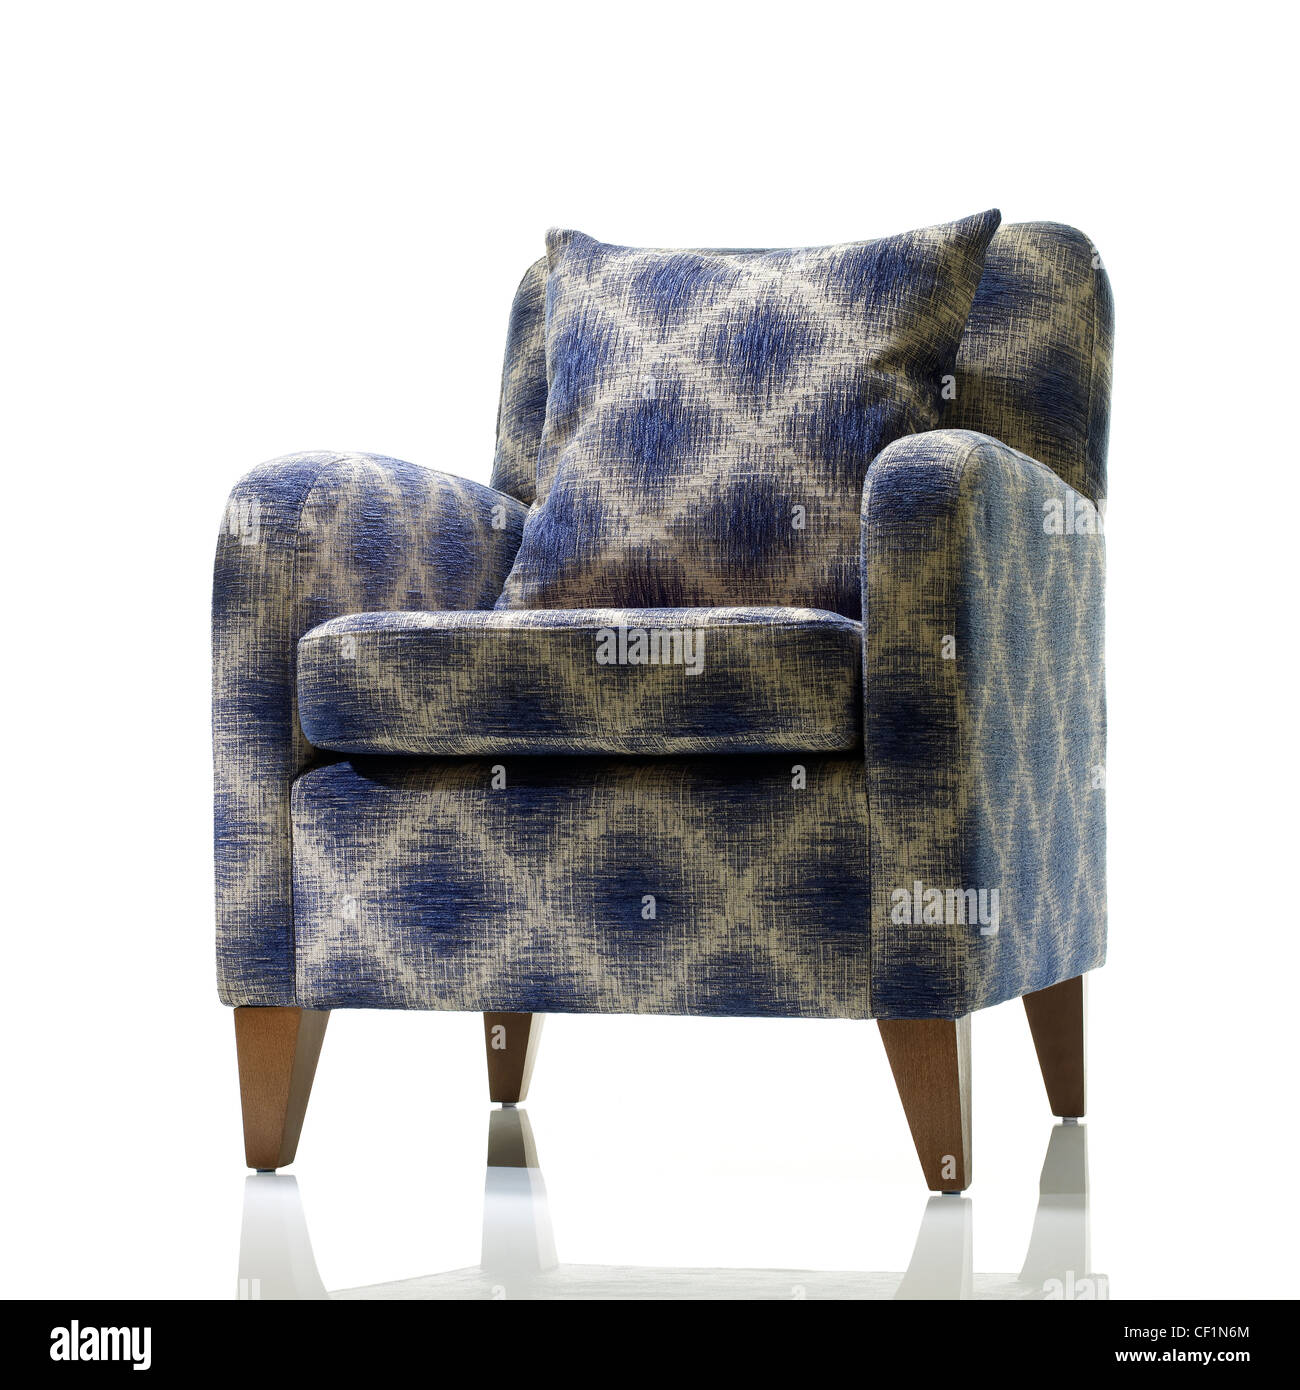 A still life shot of a a stylish blue and white armchair - Stock Image